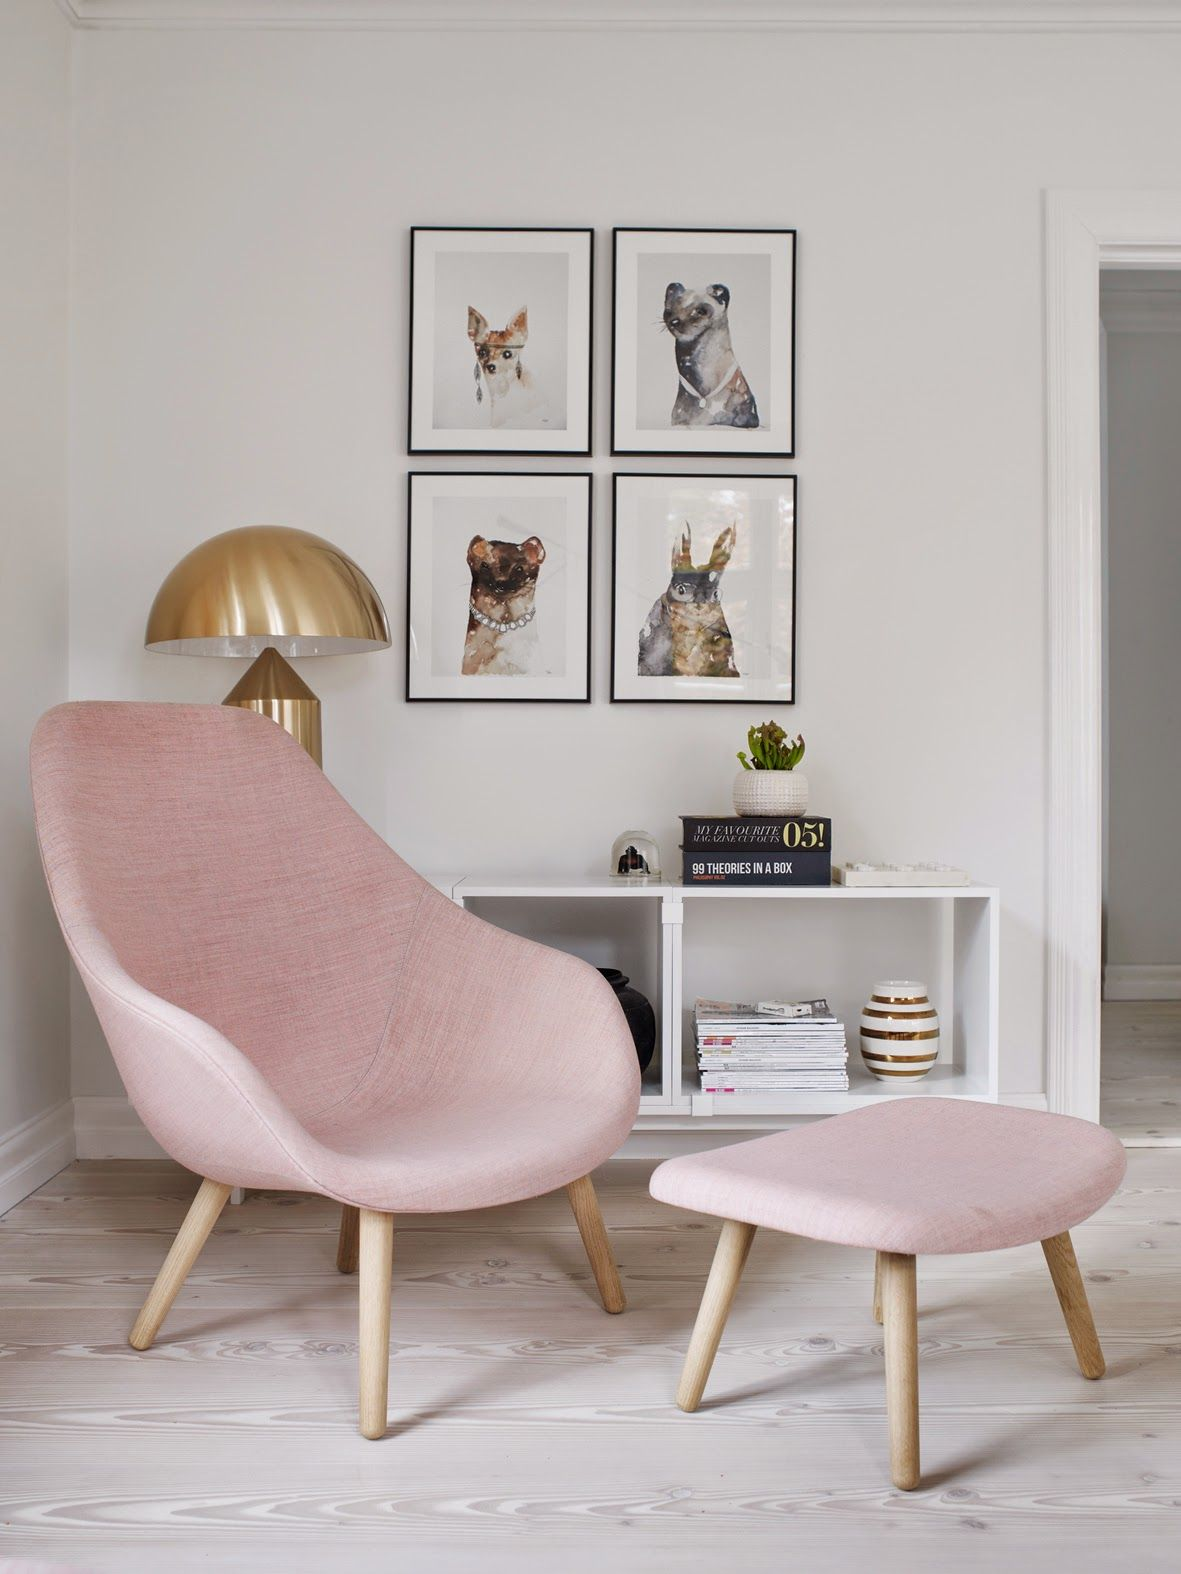 Lounge Chairs For Bedroom Living Room Rose Quartz Sofa Pretty Spaces Pinterest